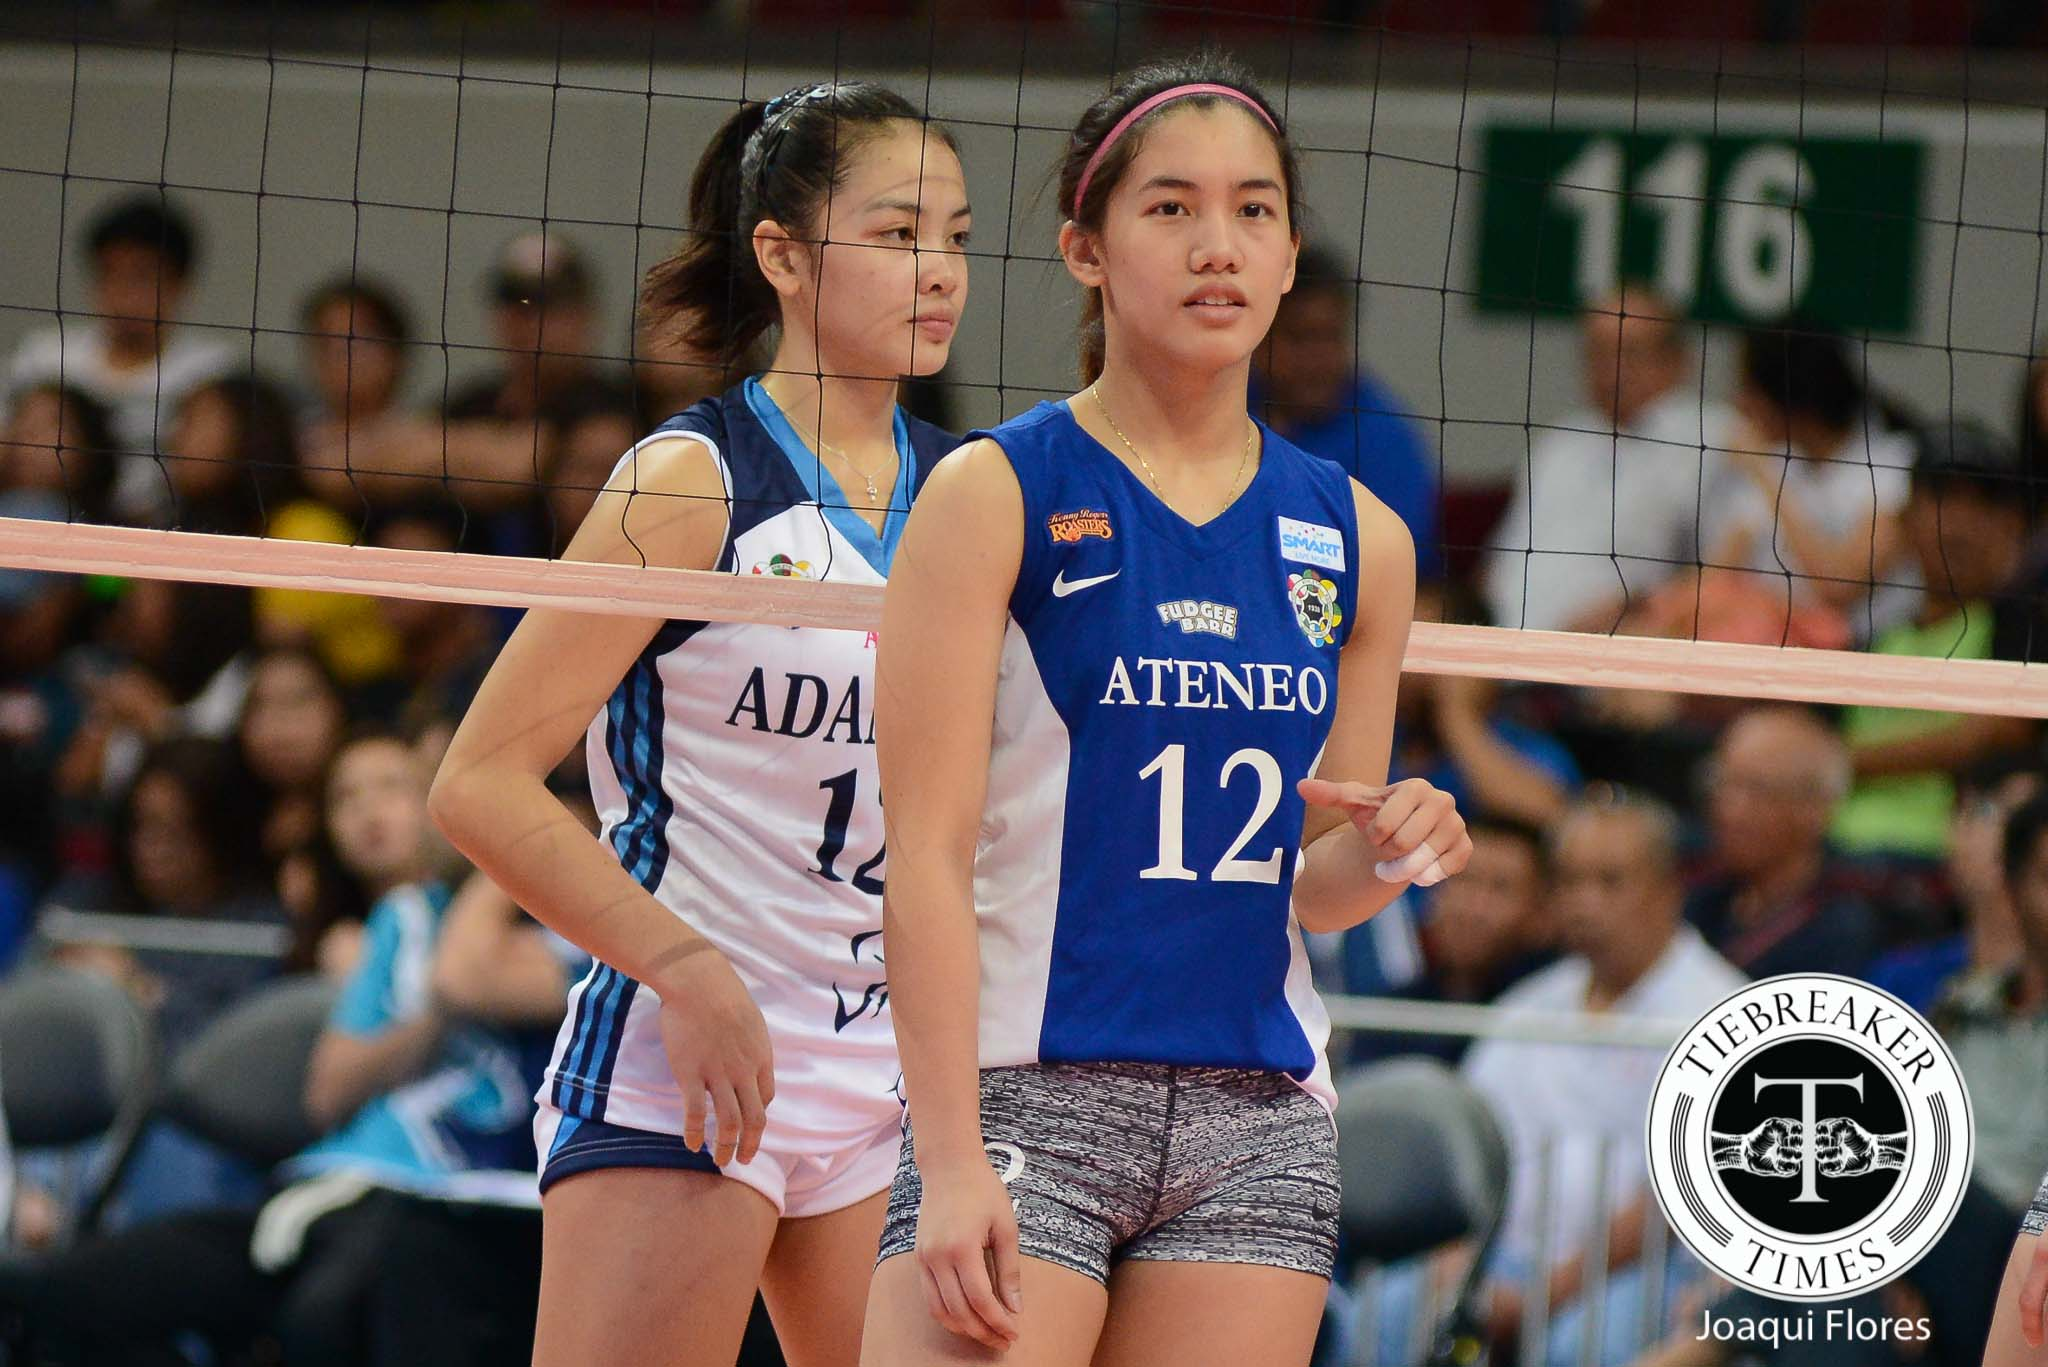 Tiebreaker Times Morado addresses Fajardo comparisons, La Salle match ADMU News UAAP Volleyball  UAAP Season 78 Women's Volleyball UAAP Season 78 Jia Morado Ateneo Women's Volleyball